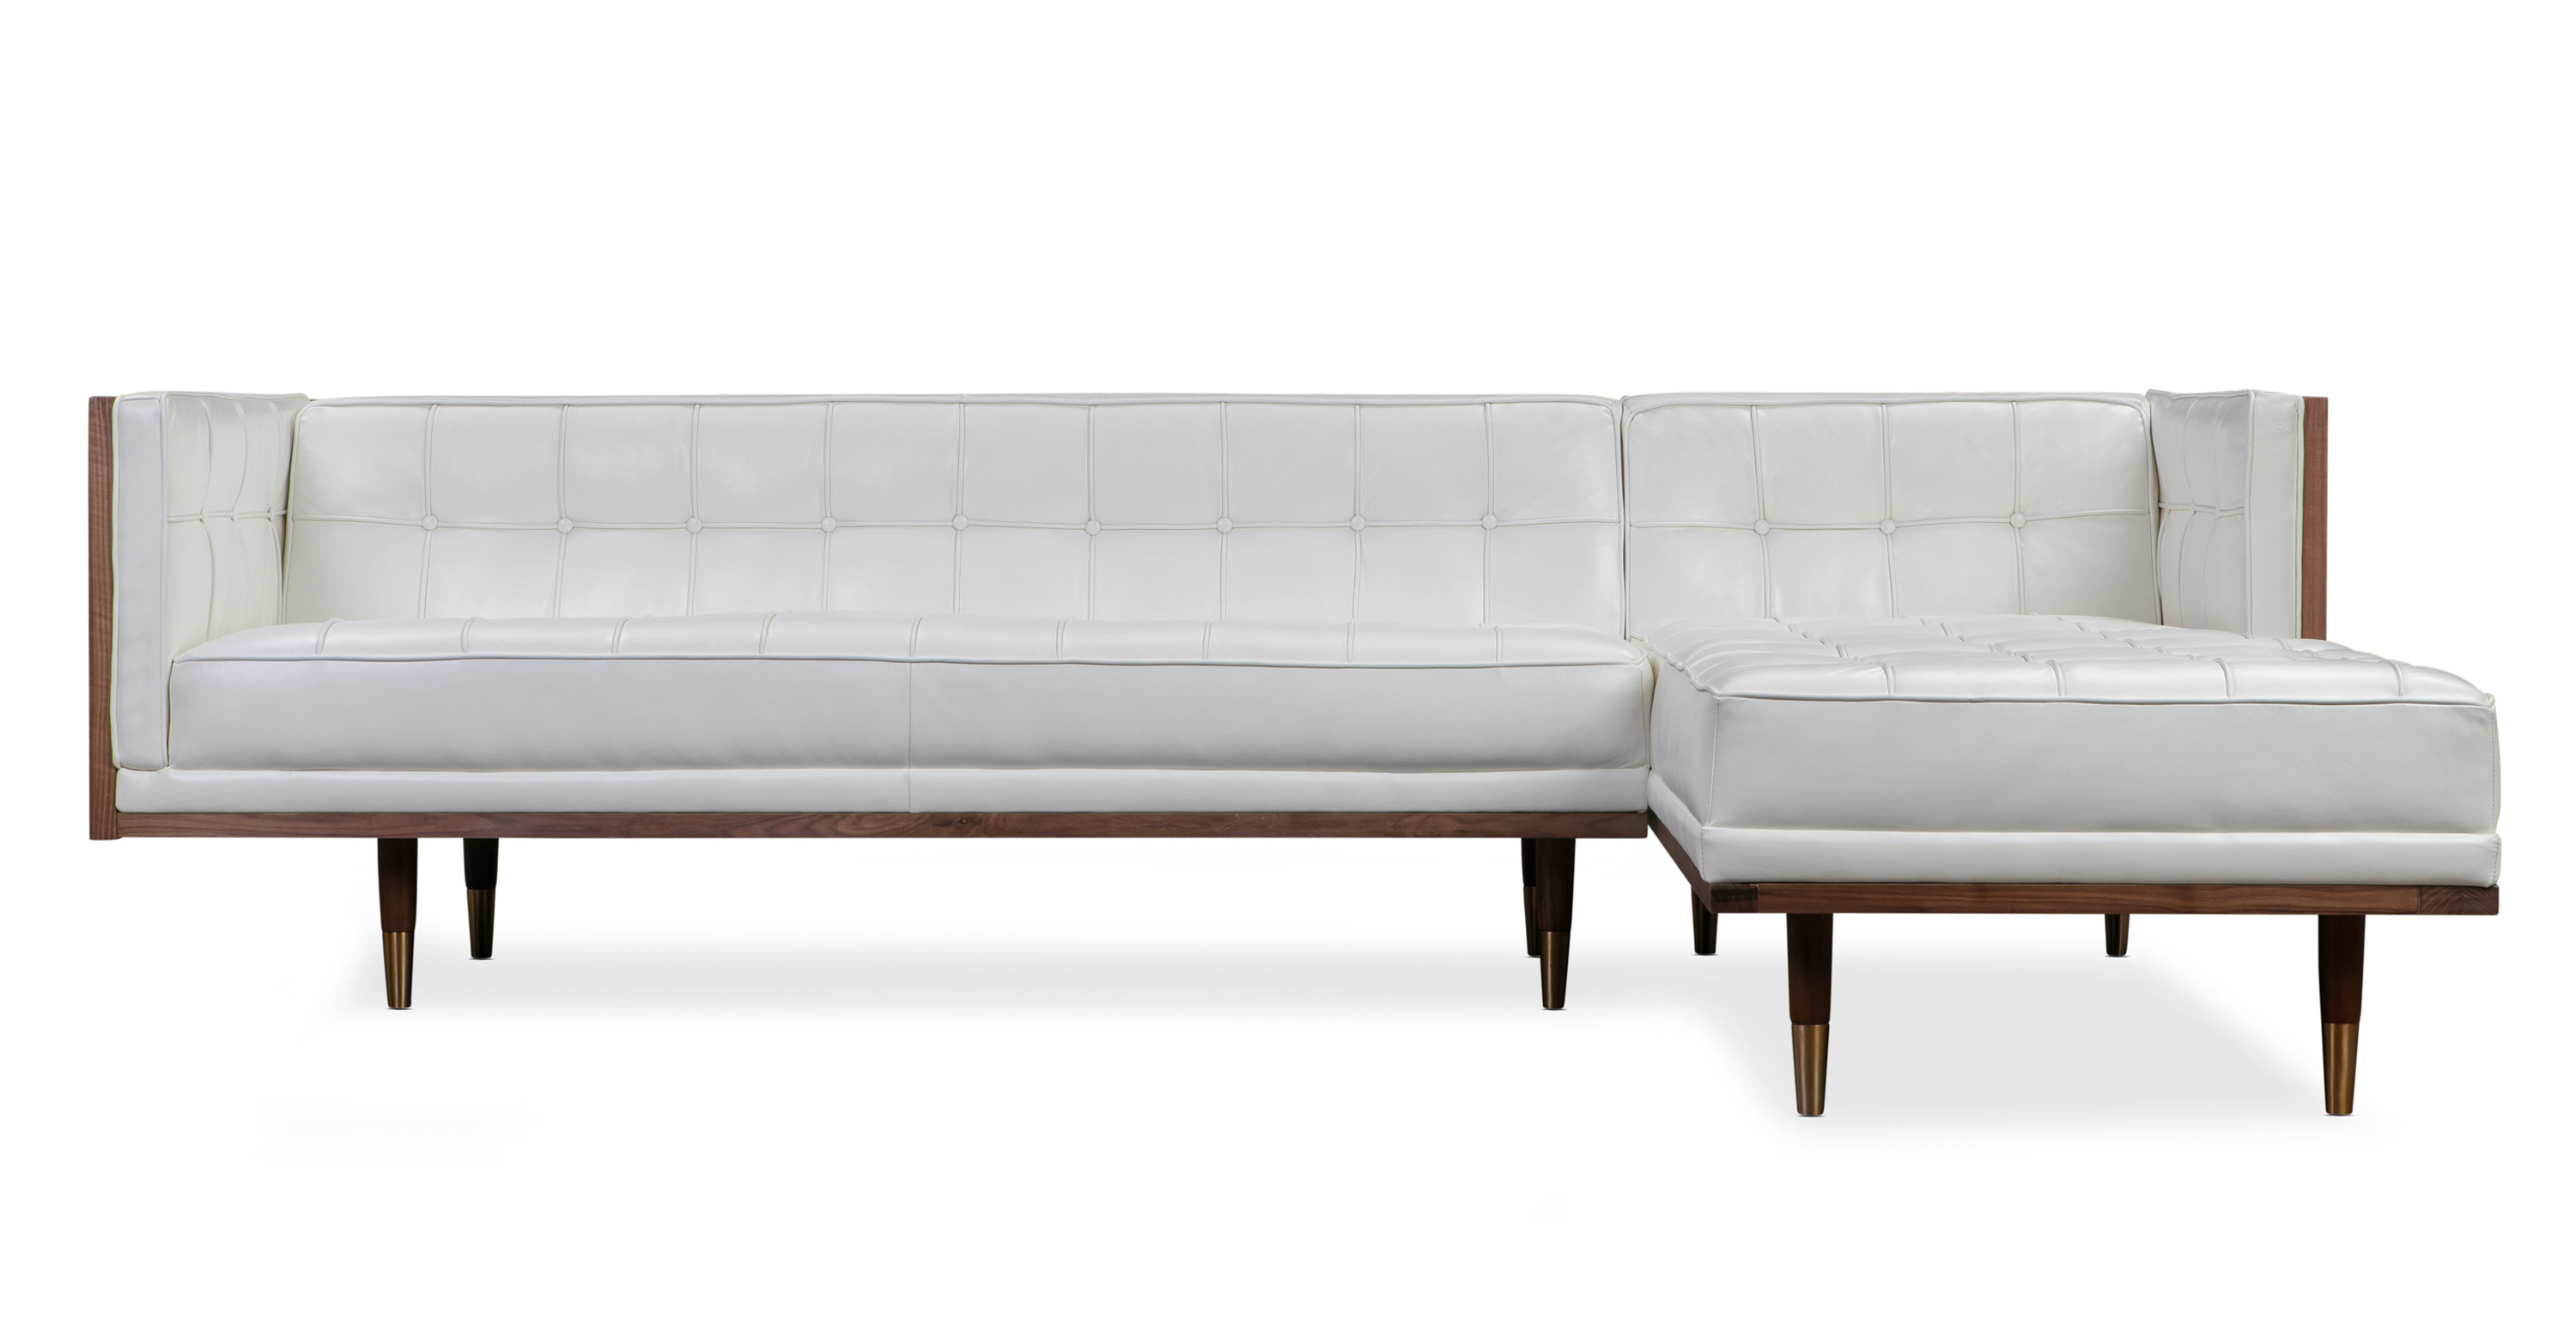 Woodrow Box Sofa Sectional Right, Walnut/White Aniline